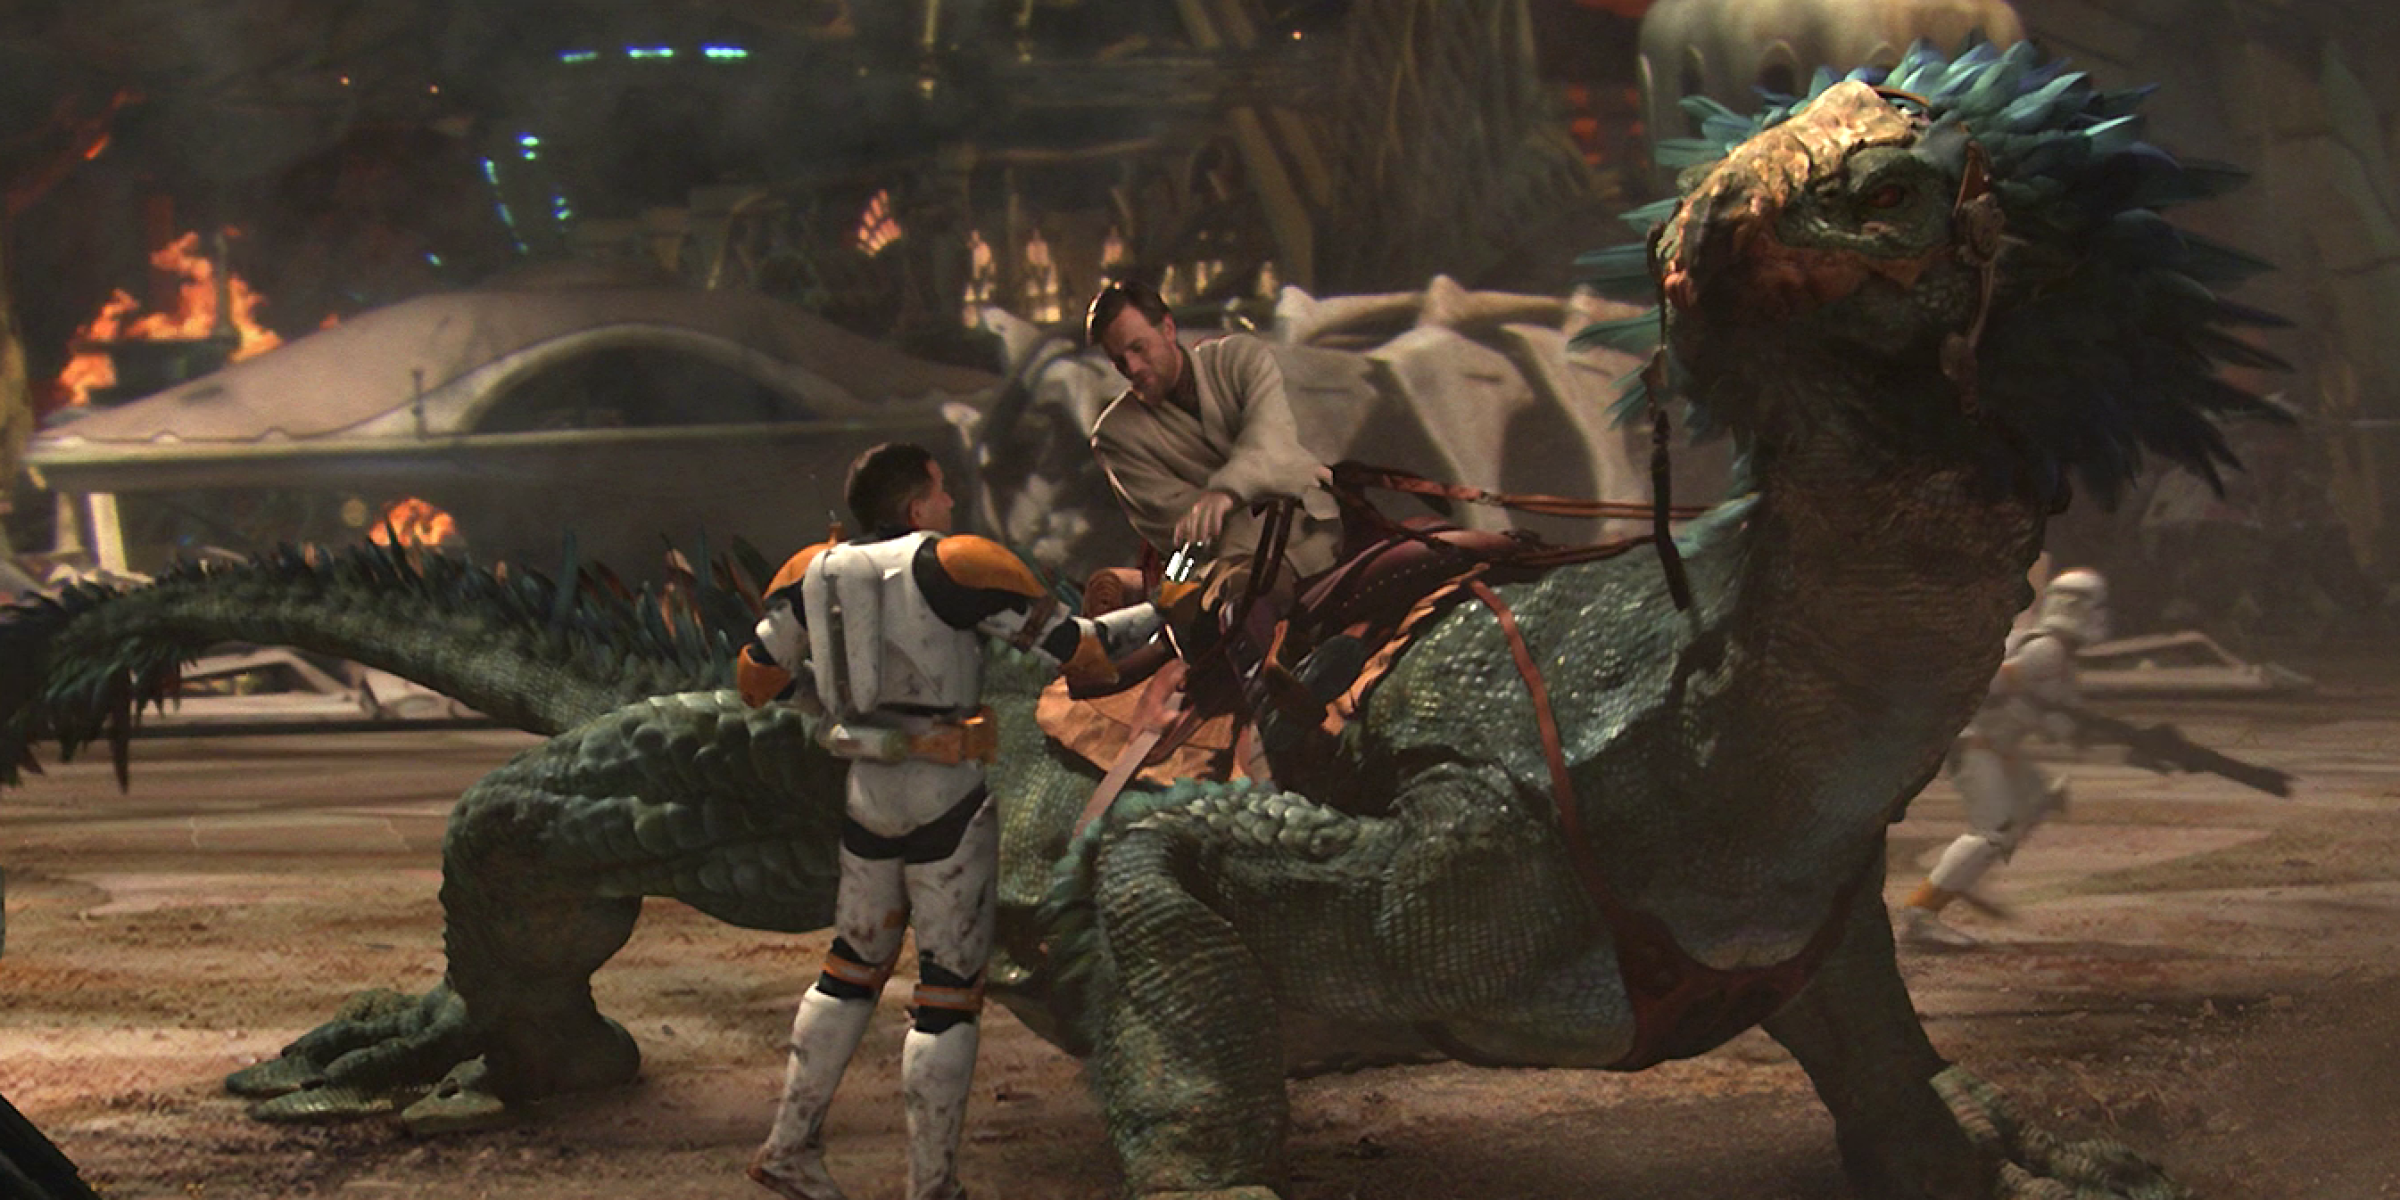 9 Creatures in the Star Wars Universe We'd Like to Keep as ...